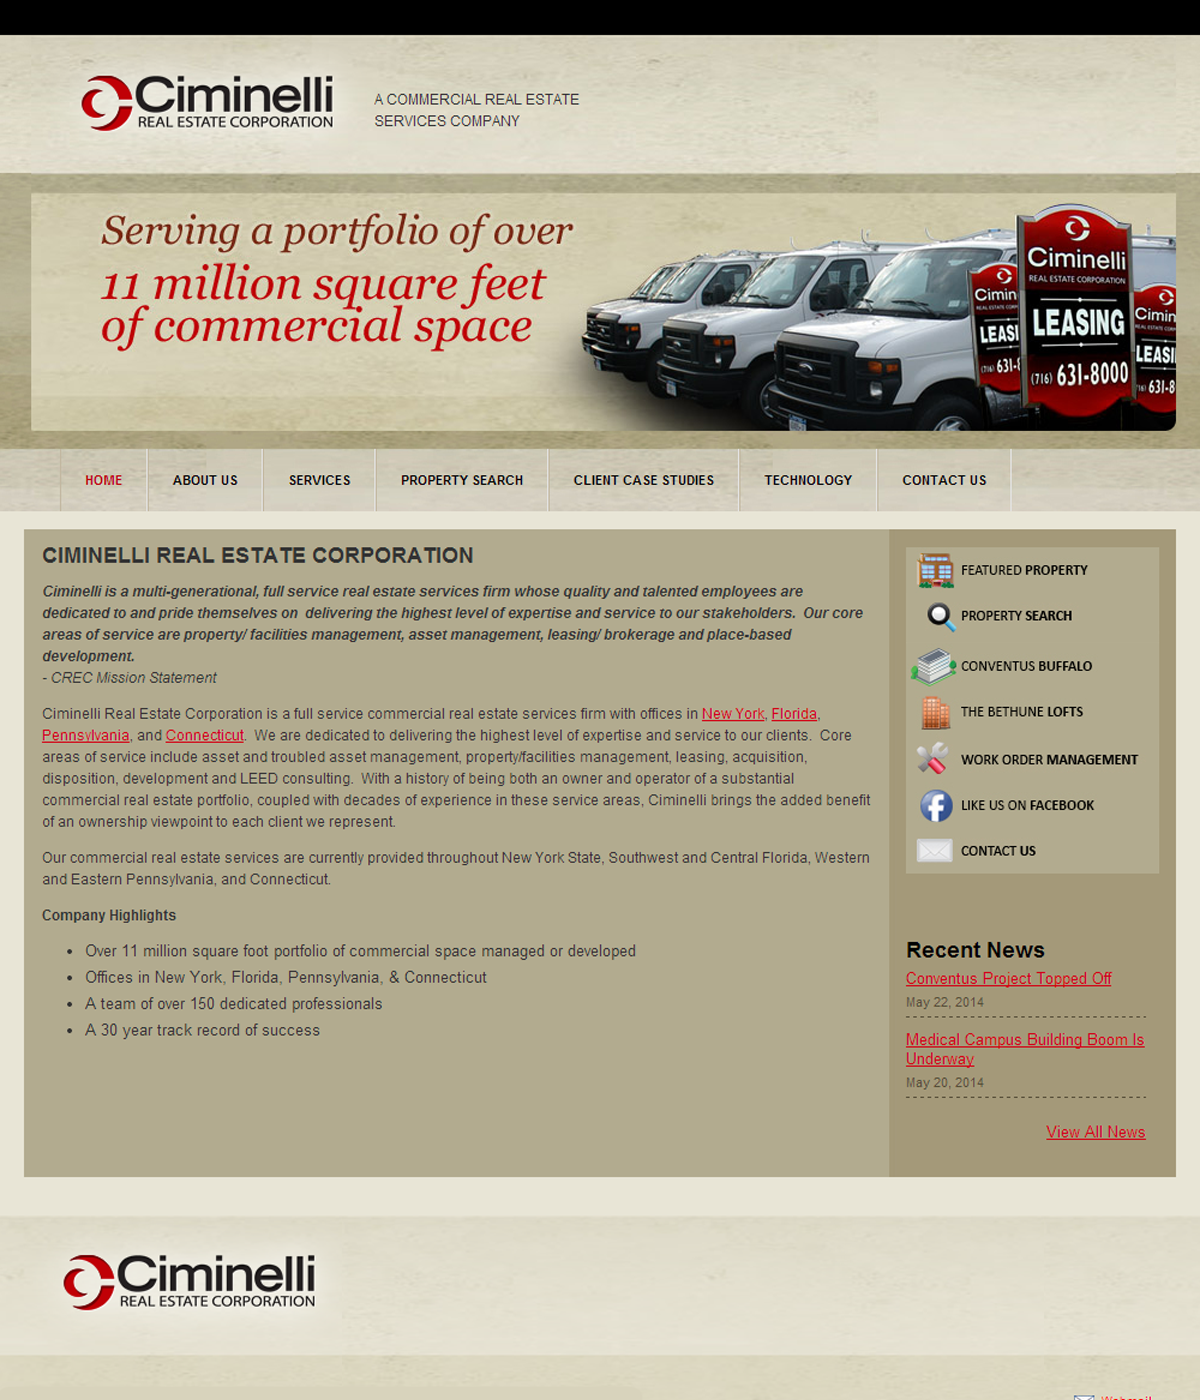 Ciminelli Real Estate Corporation